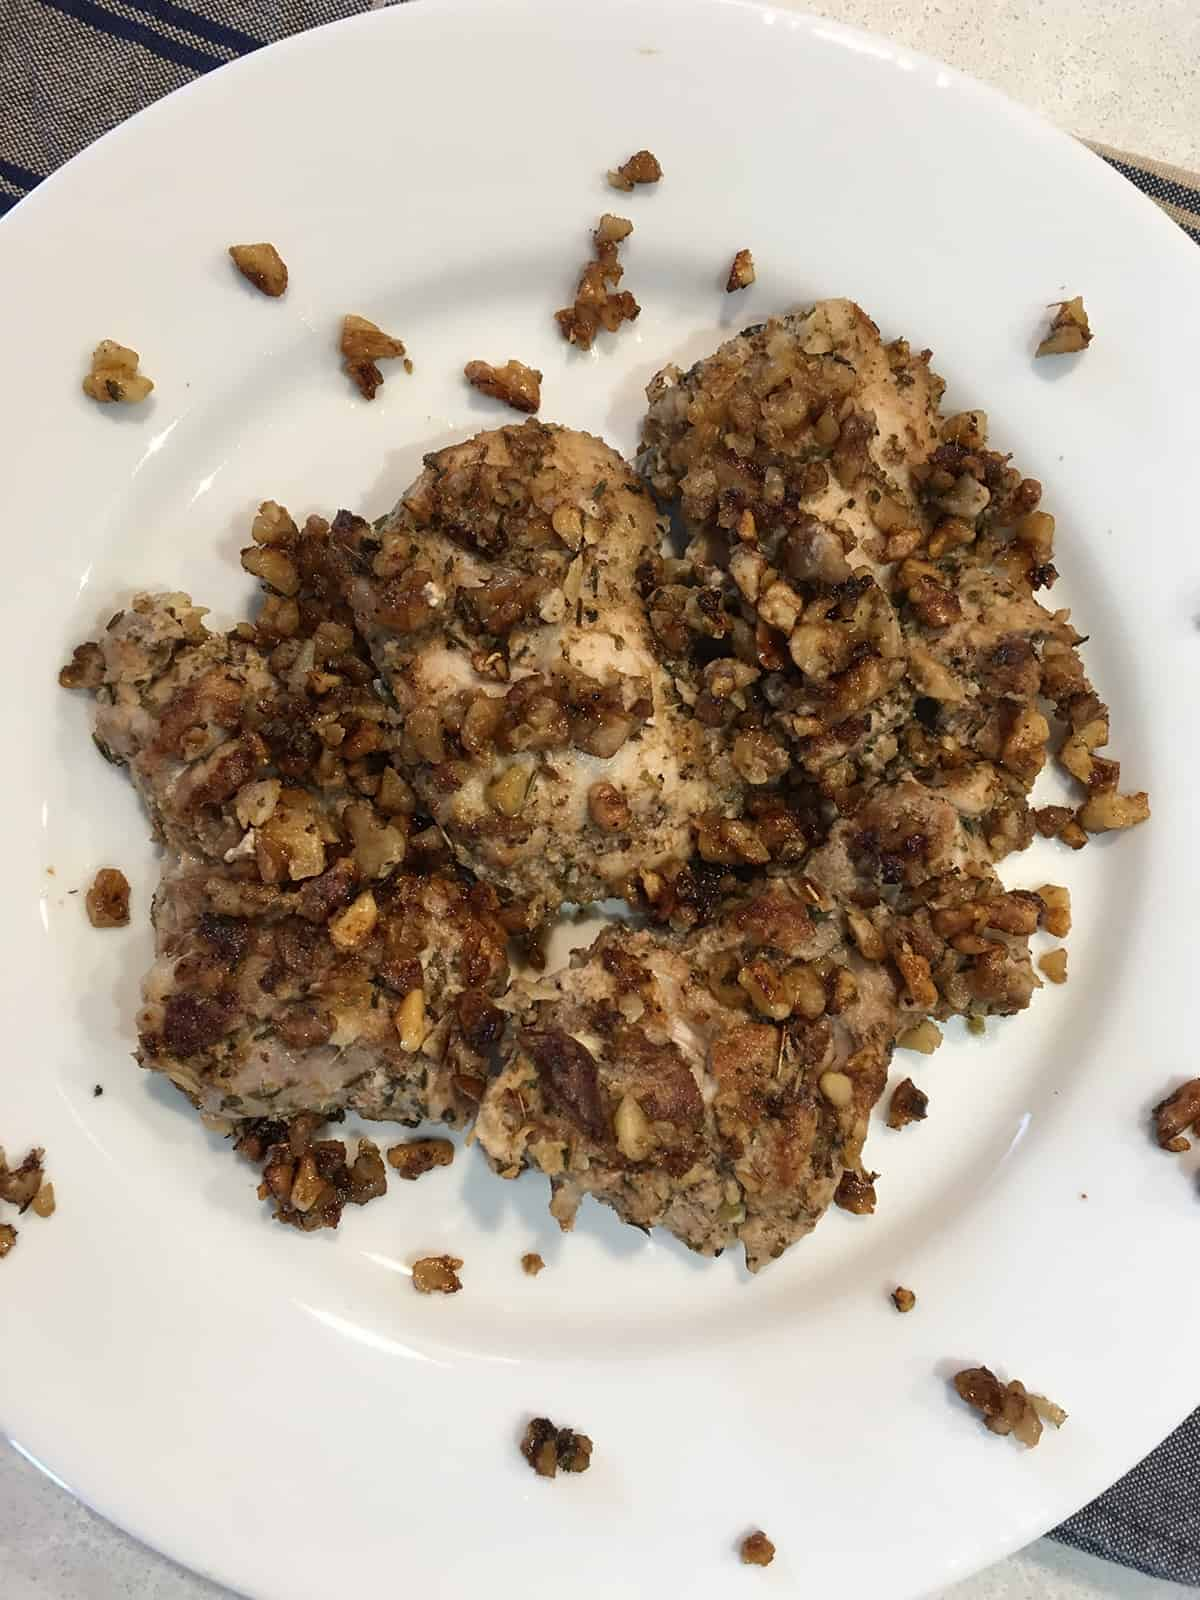 Walnut and herb crusted chicken thighs on a white serving platter